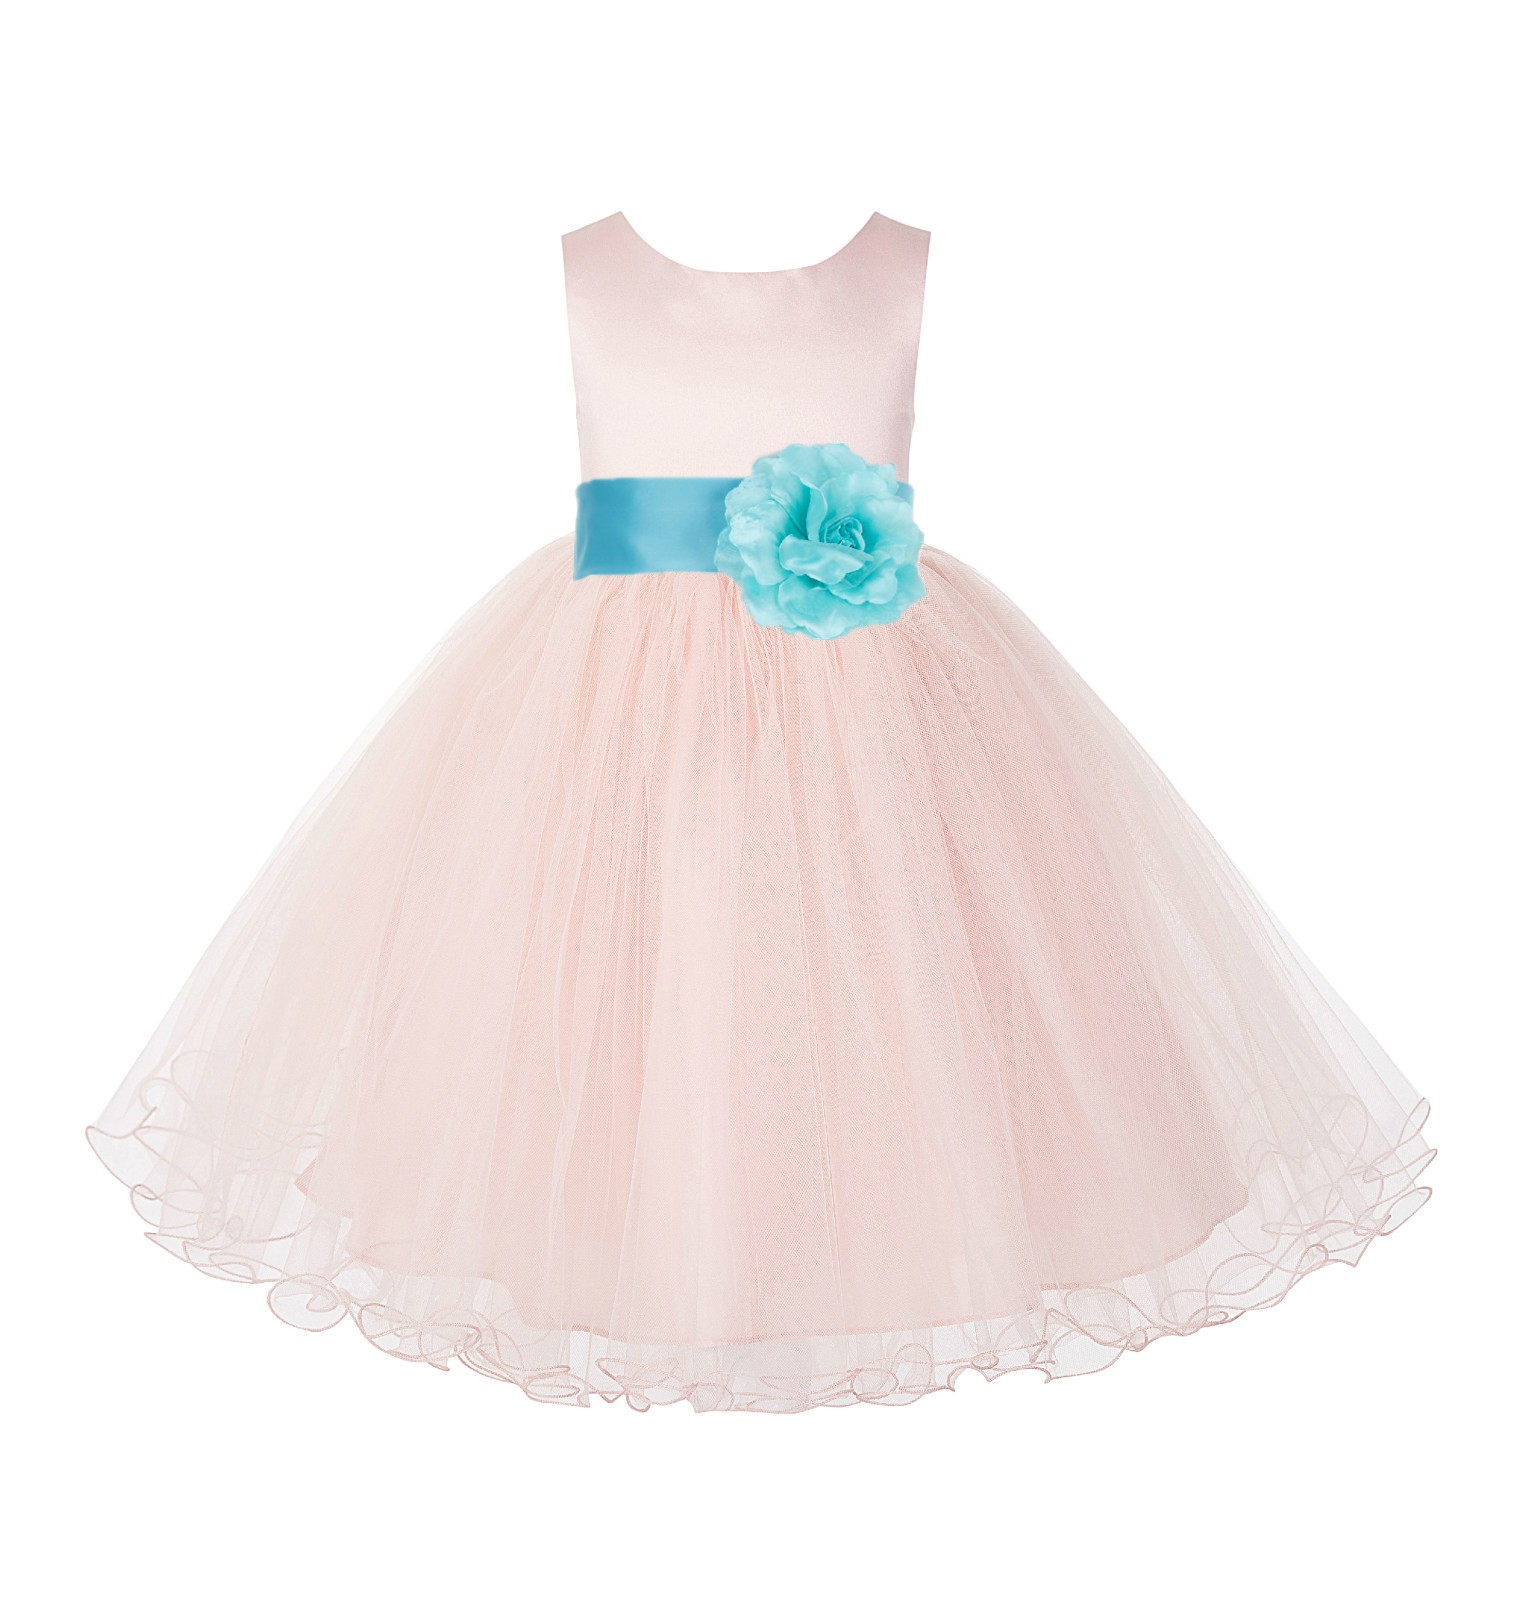 Blush Pink / Spa Tulle Rattail Edge Flower Girl Dress Pageant Recital 829S